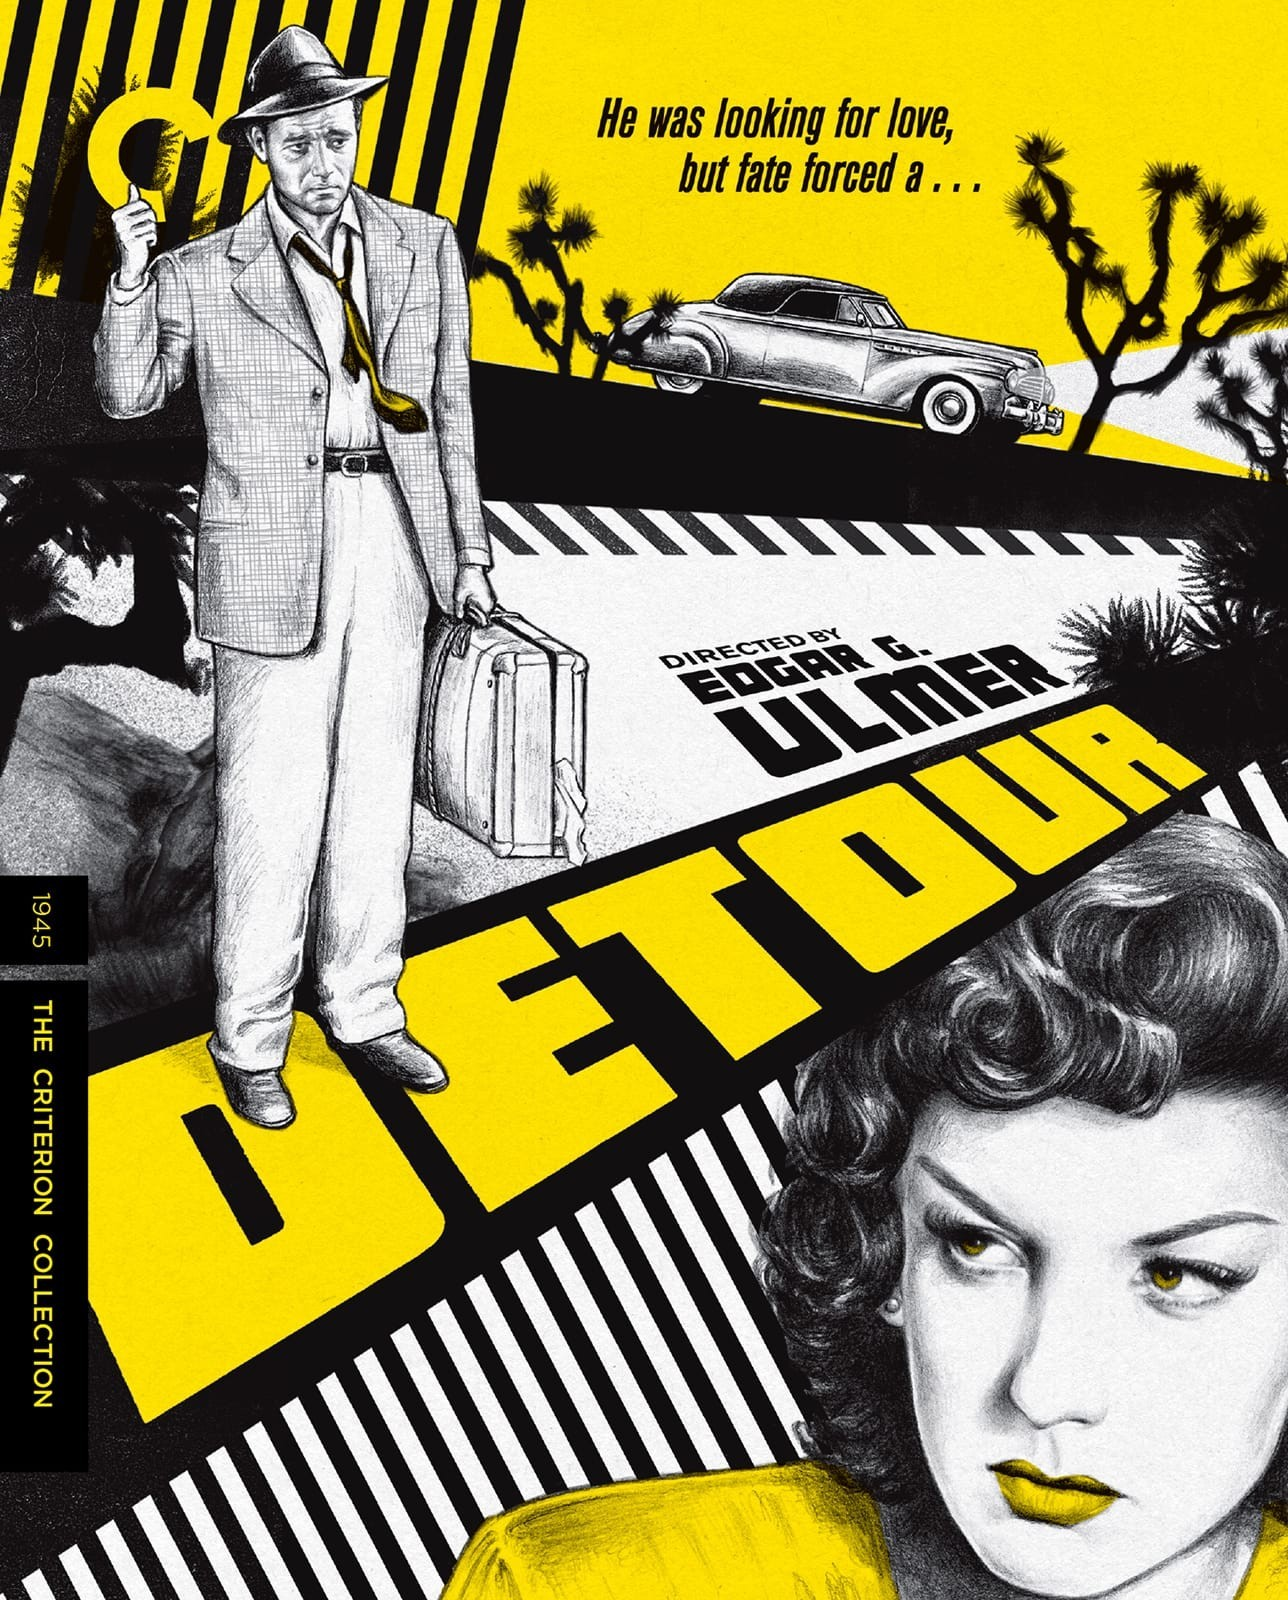 Detour (The Criterion Collection)(Blu-ray)(Region A)